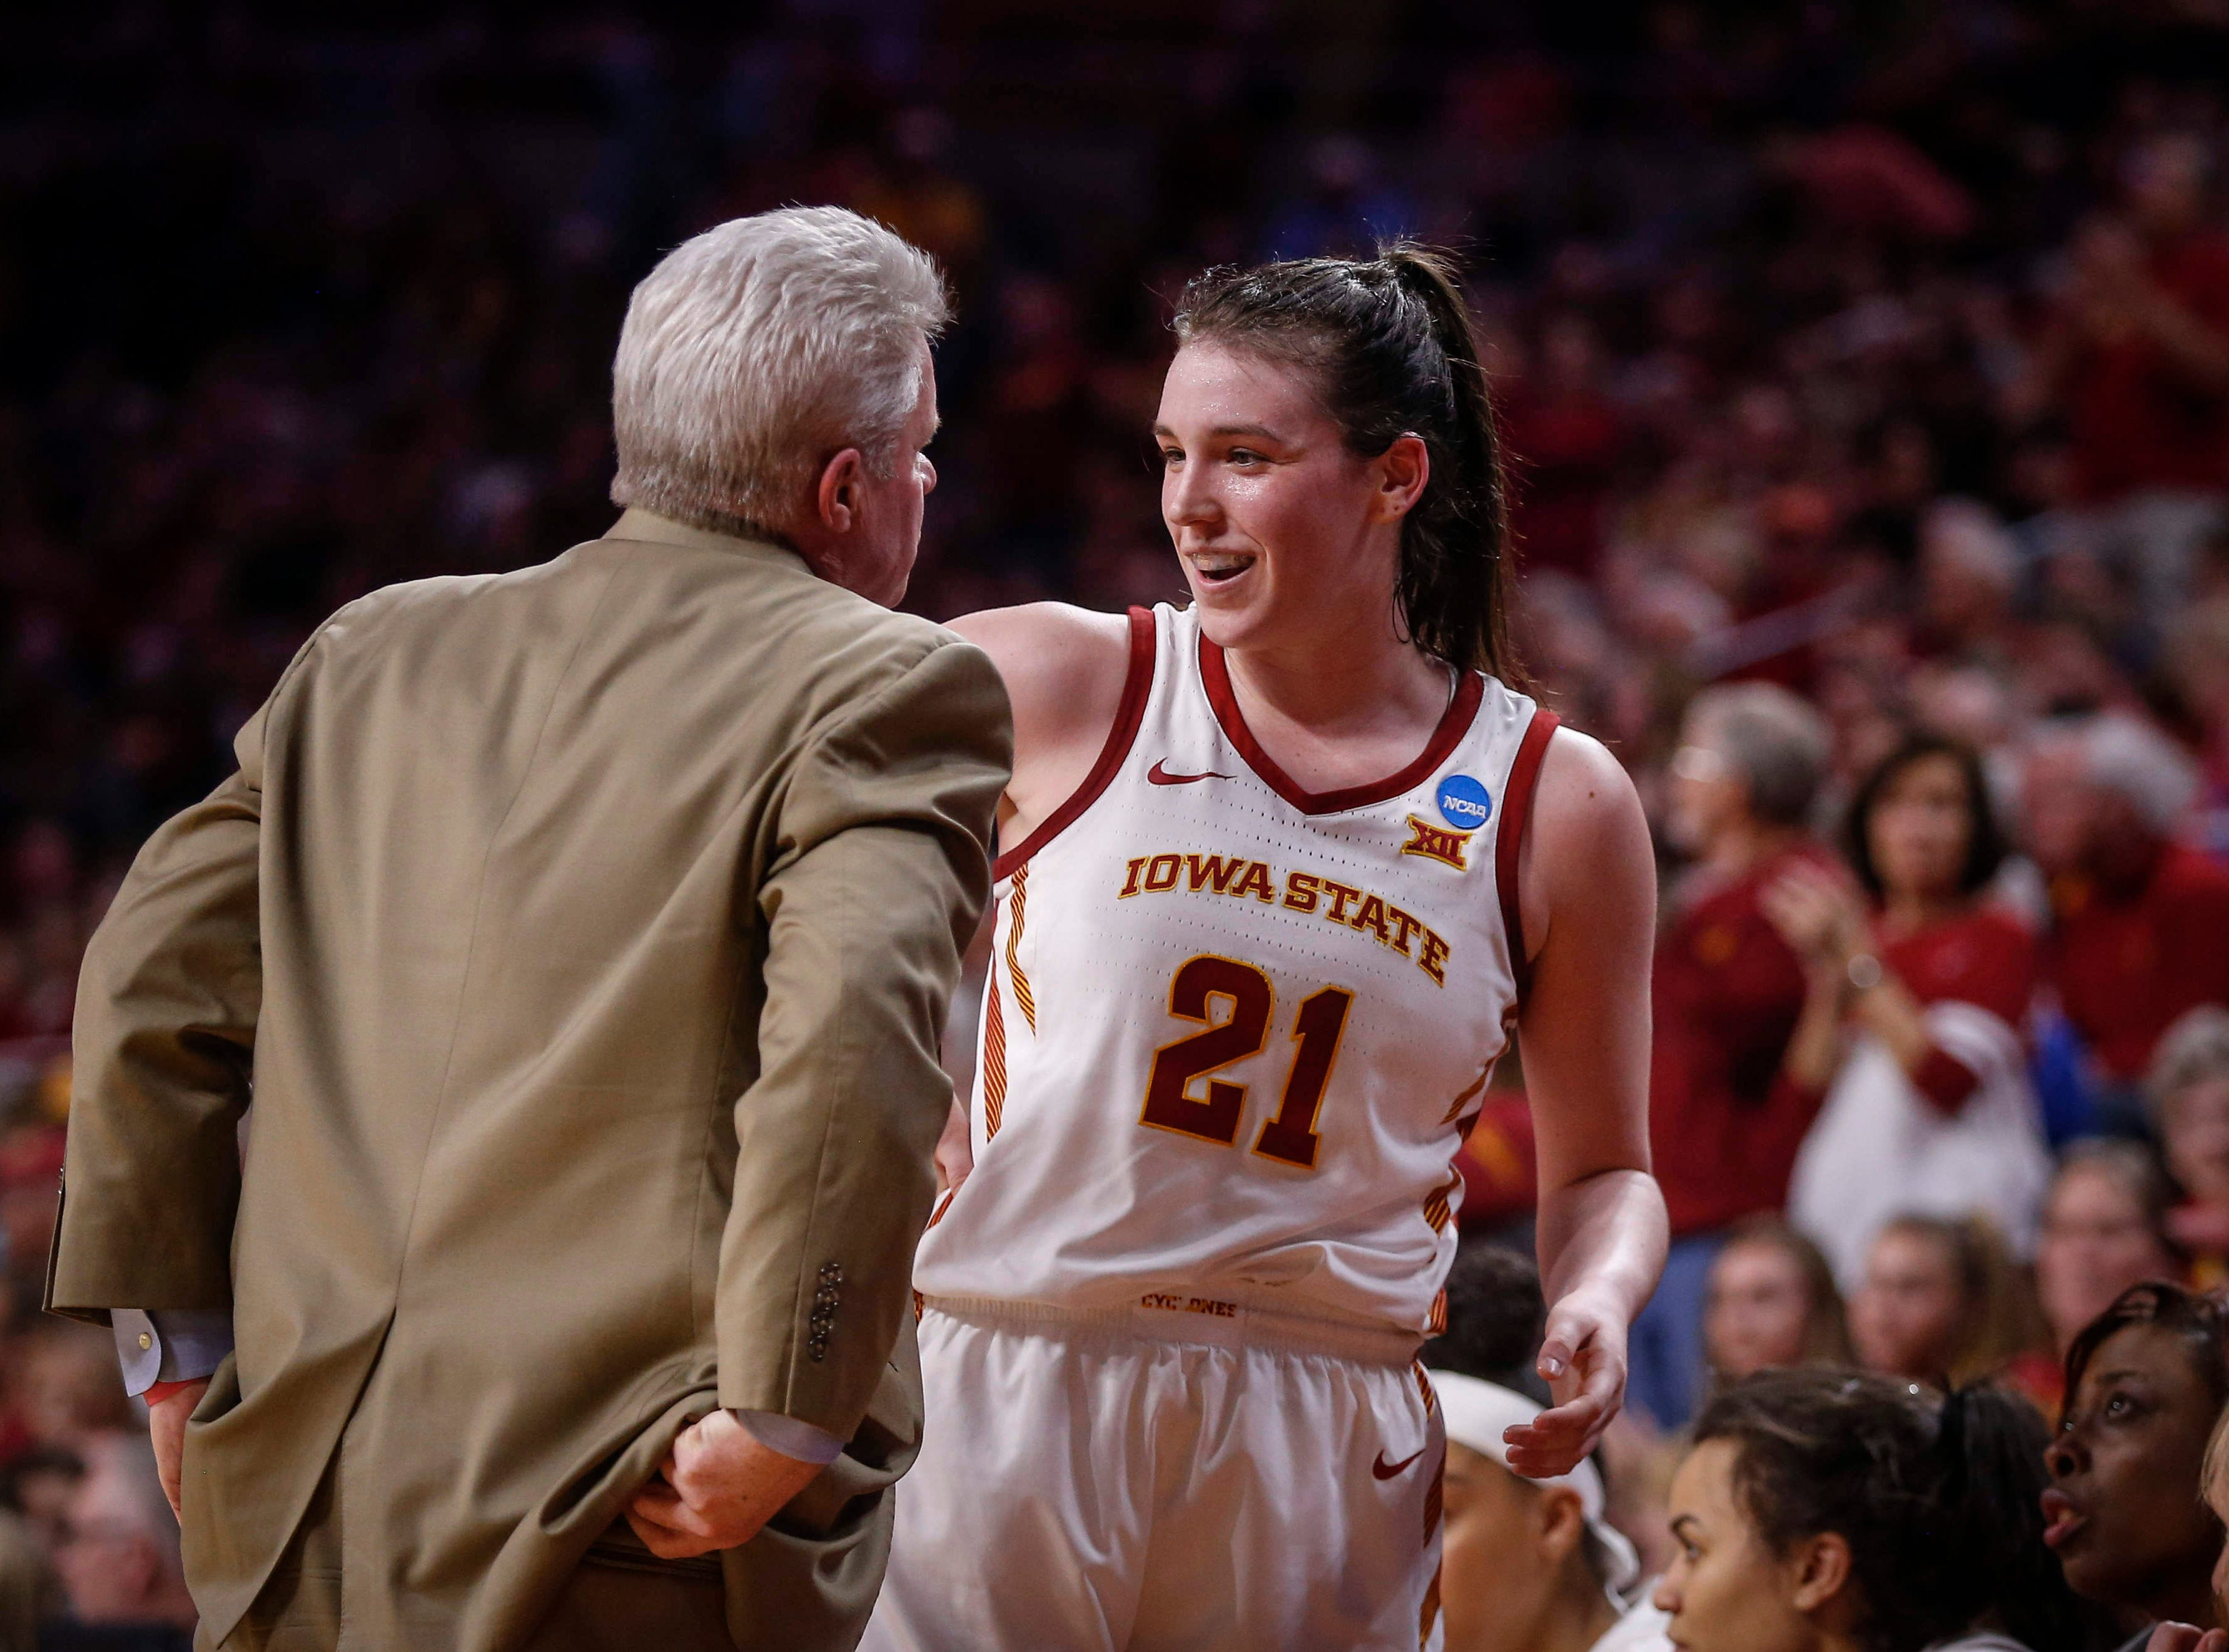 Iowa State senior Bridget Carleton is welcomed to the bench by head coach Bill Fennelly in the fourth quarter against New Mexico State on Saturday, March 23, 2019, at Hilton Coliseum in Ames.